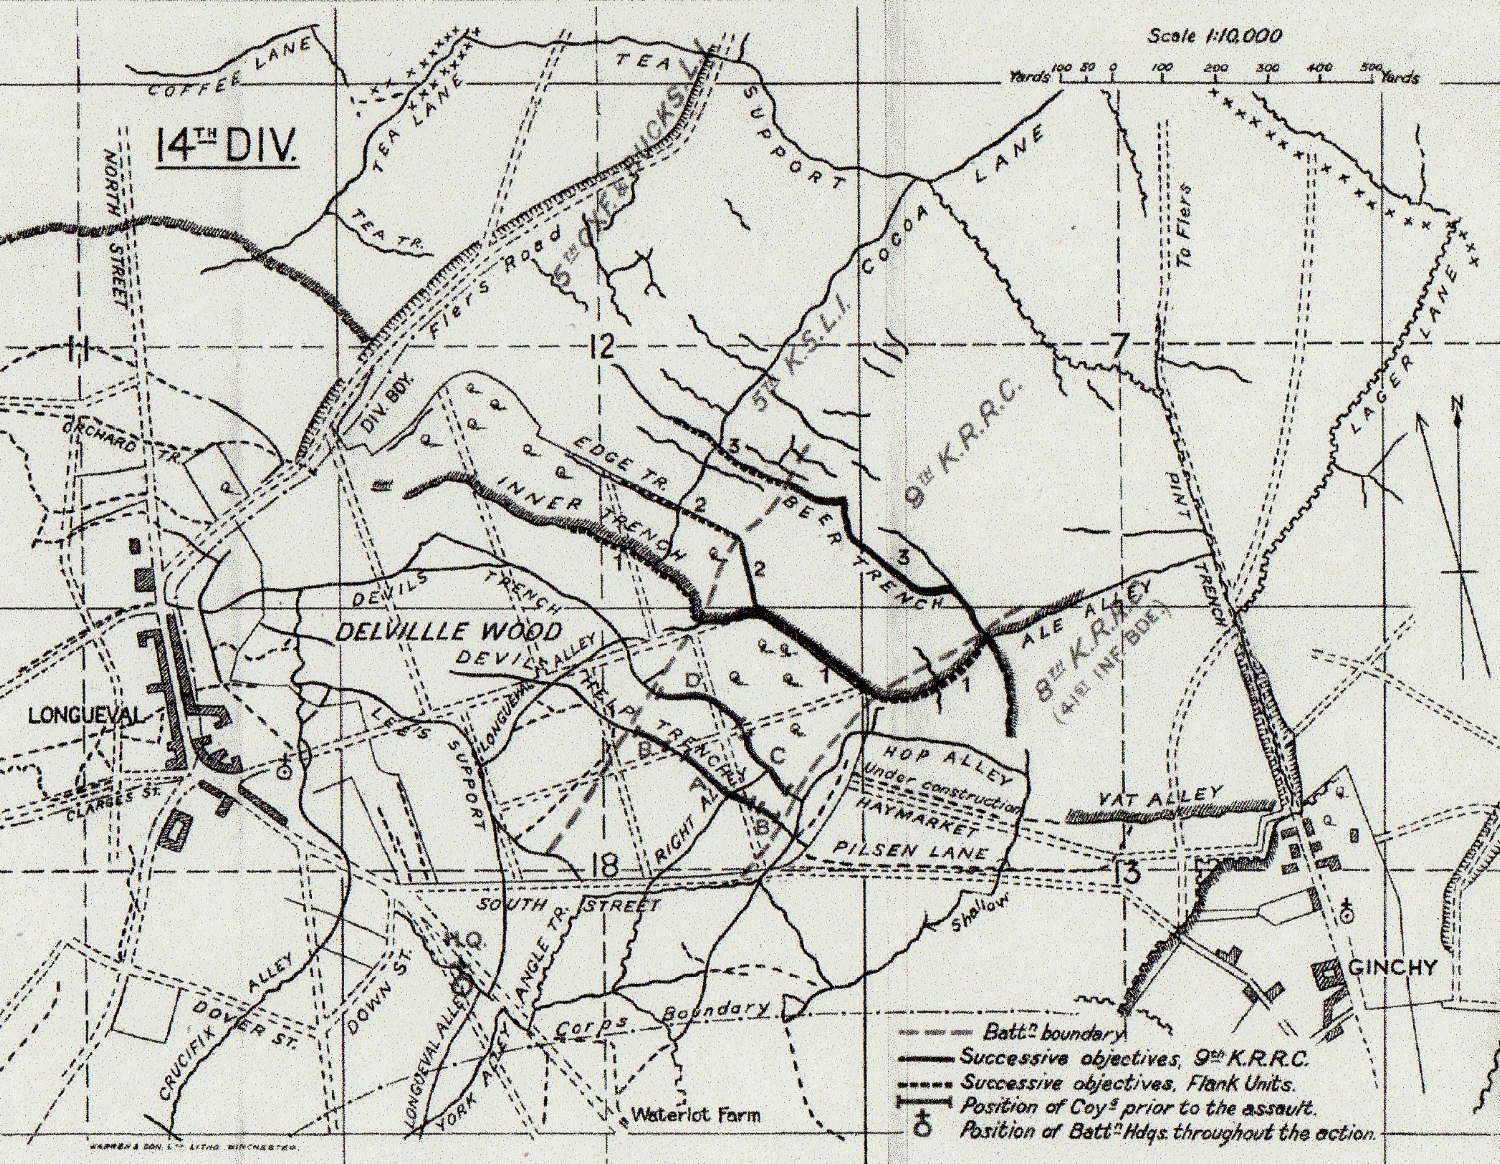 9th Battalion K.R.R.C. field map of Delville Wood at the time of their assault on 24 August 1914